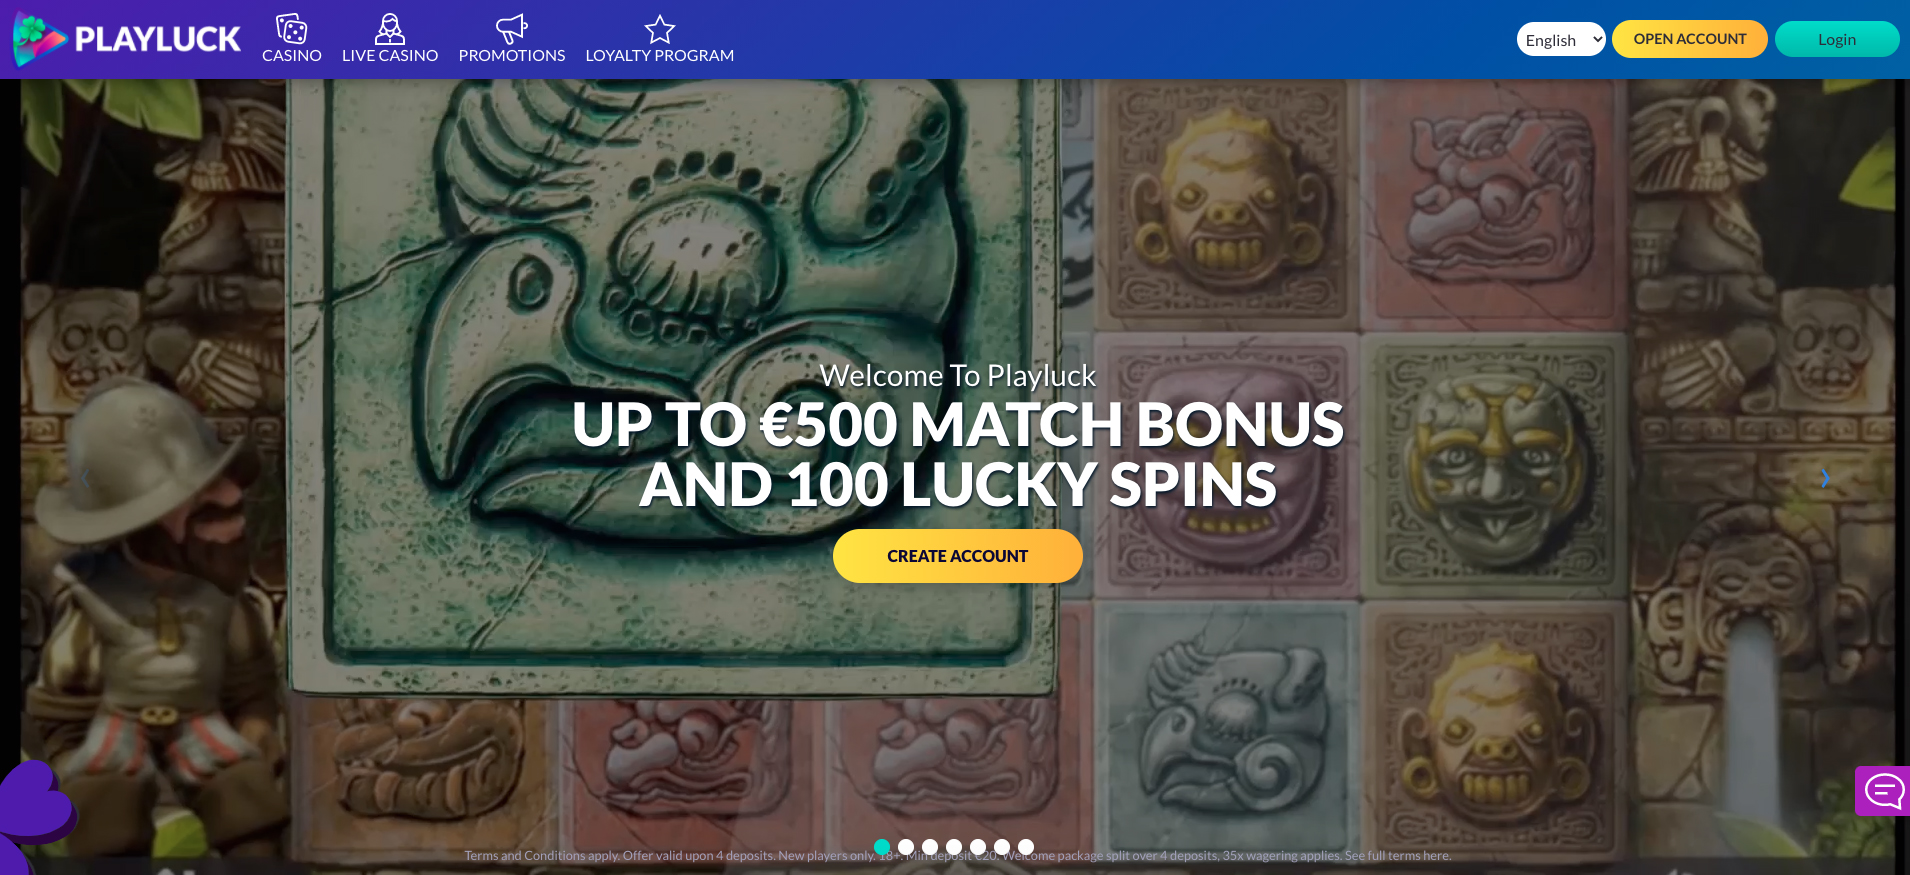 Playluck Online Casino Review